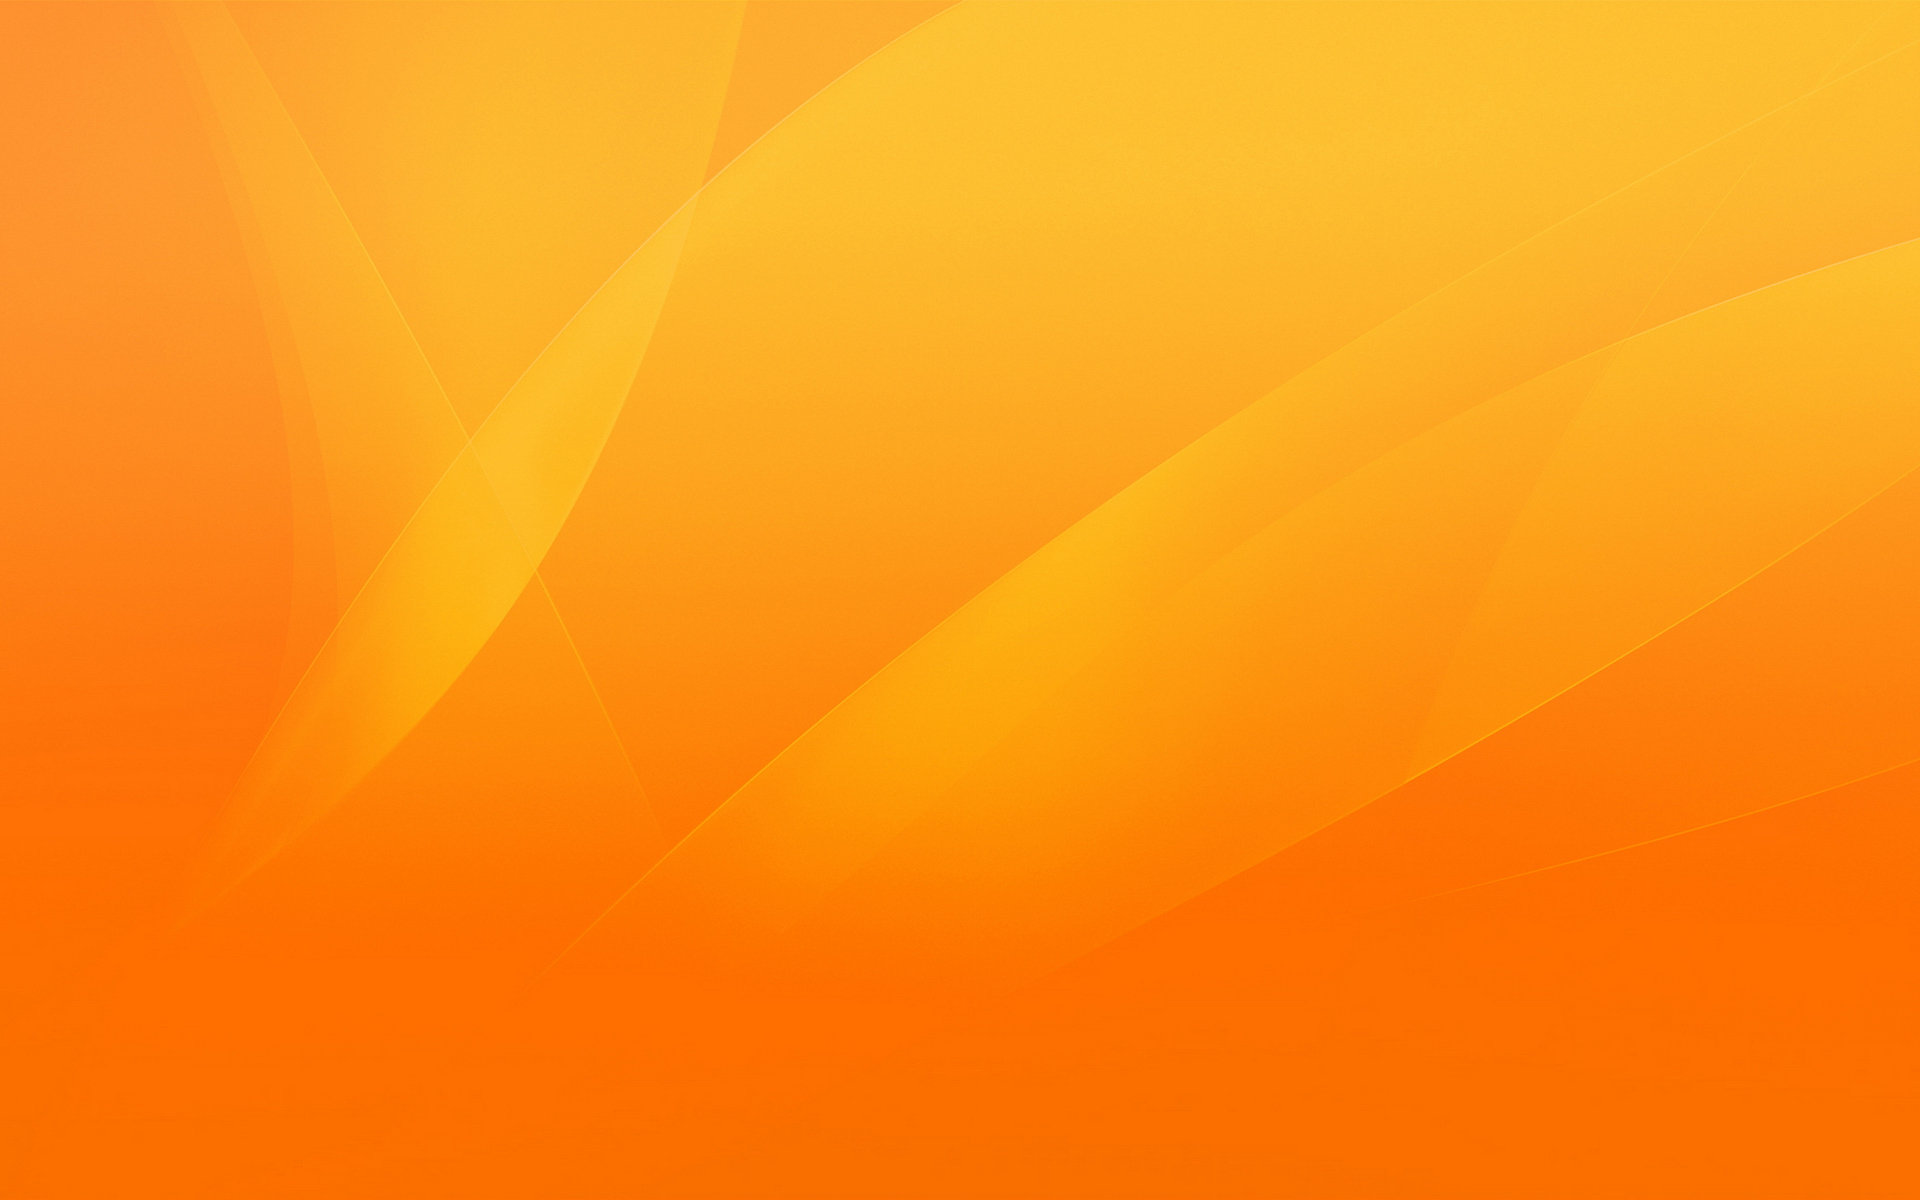 Download hd 1920x1200 Orange Abstract computer background ID:141089 for free